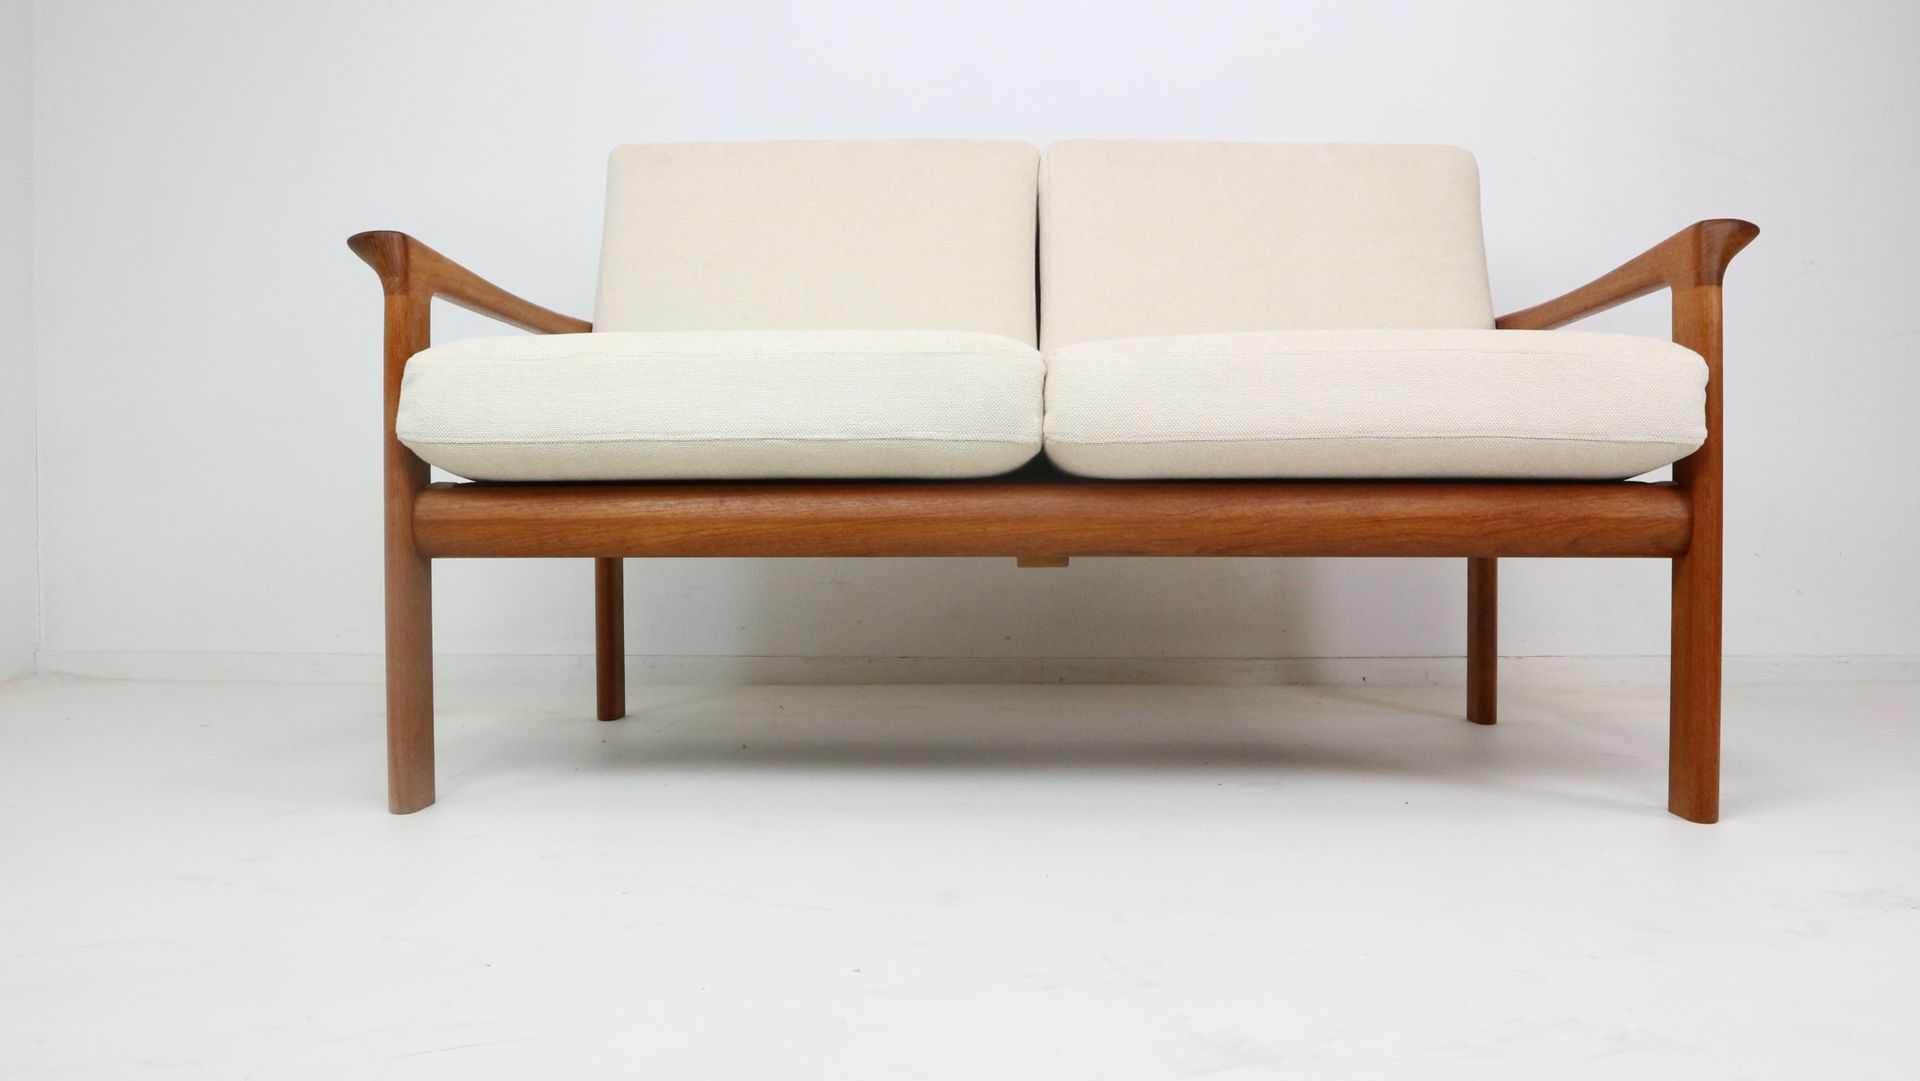 Borneo Two Seat Sofa By Sven Ellekaer For Komfort 1960s For Sale At Pamono